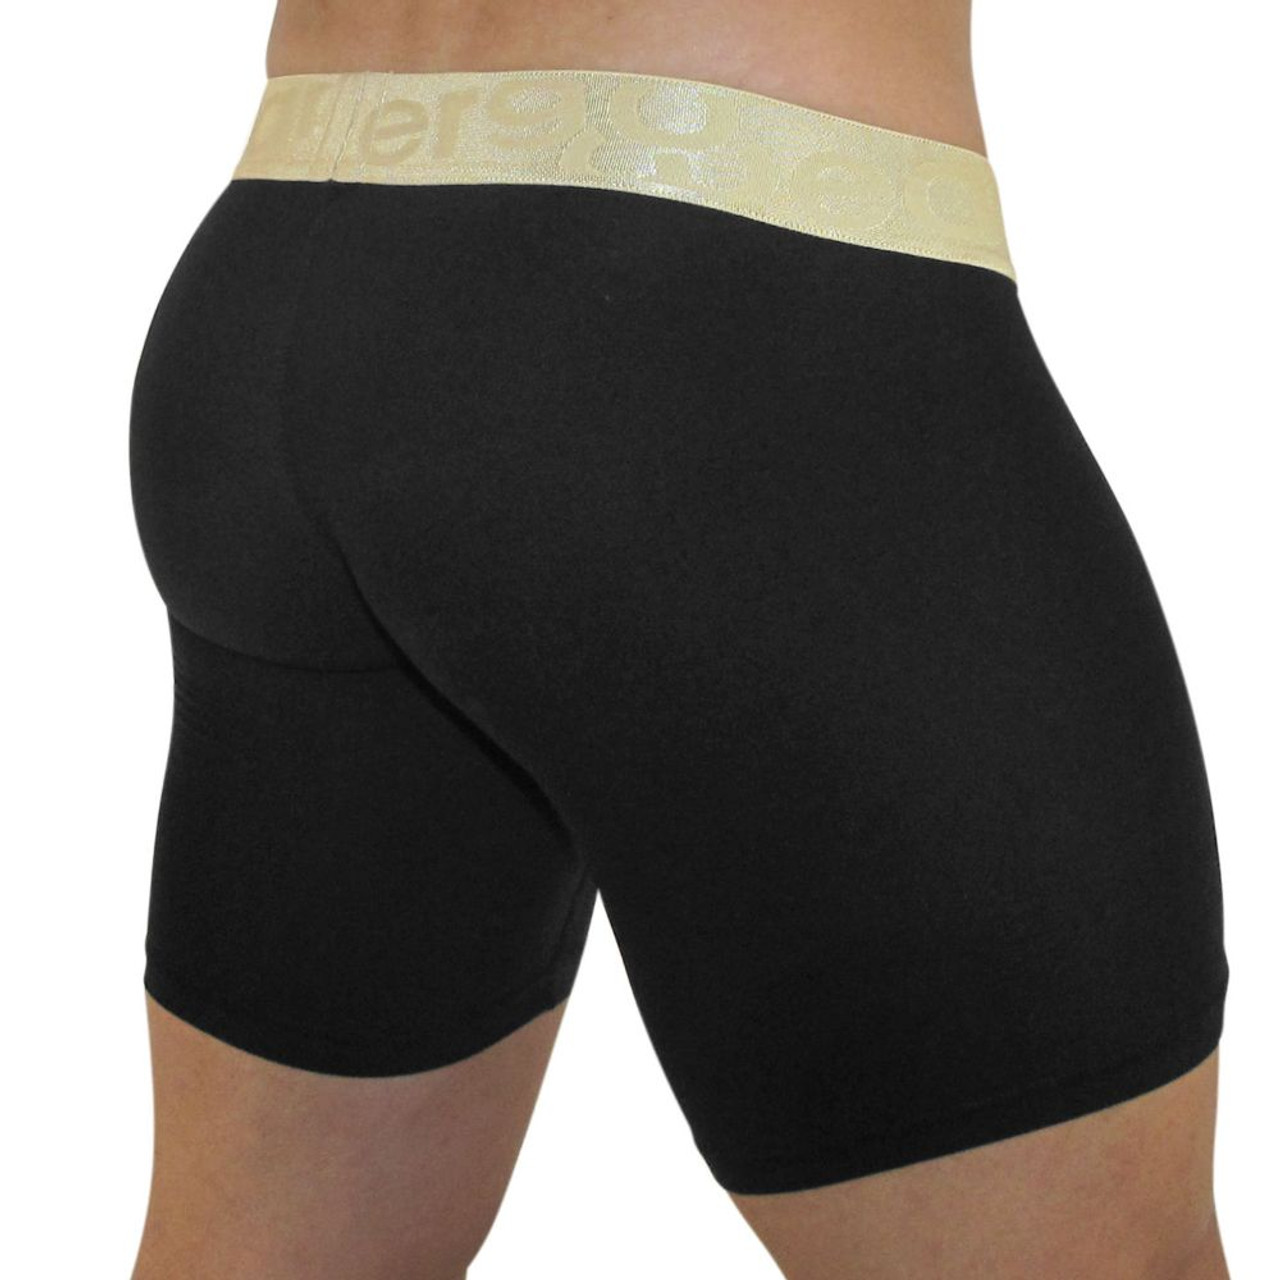 great variety models Discover top-rated original Ergowear FEEL XV Boxer Briefs - Black / Gold